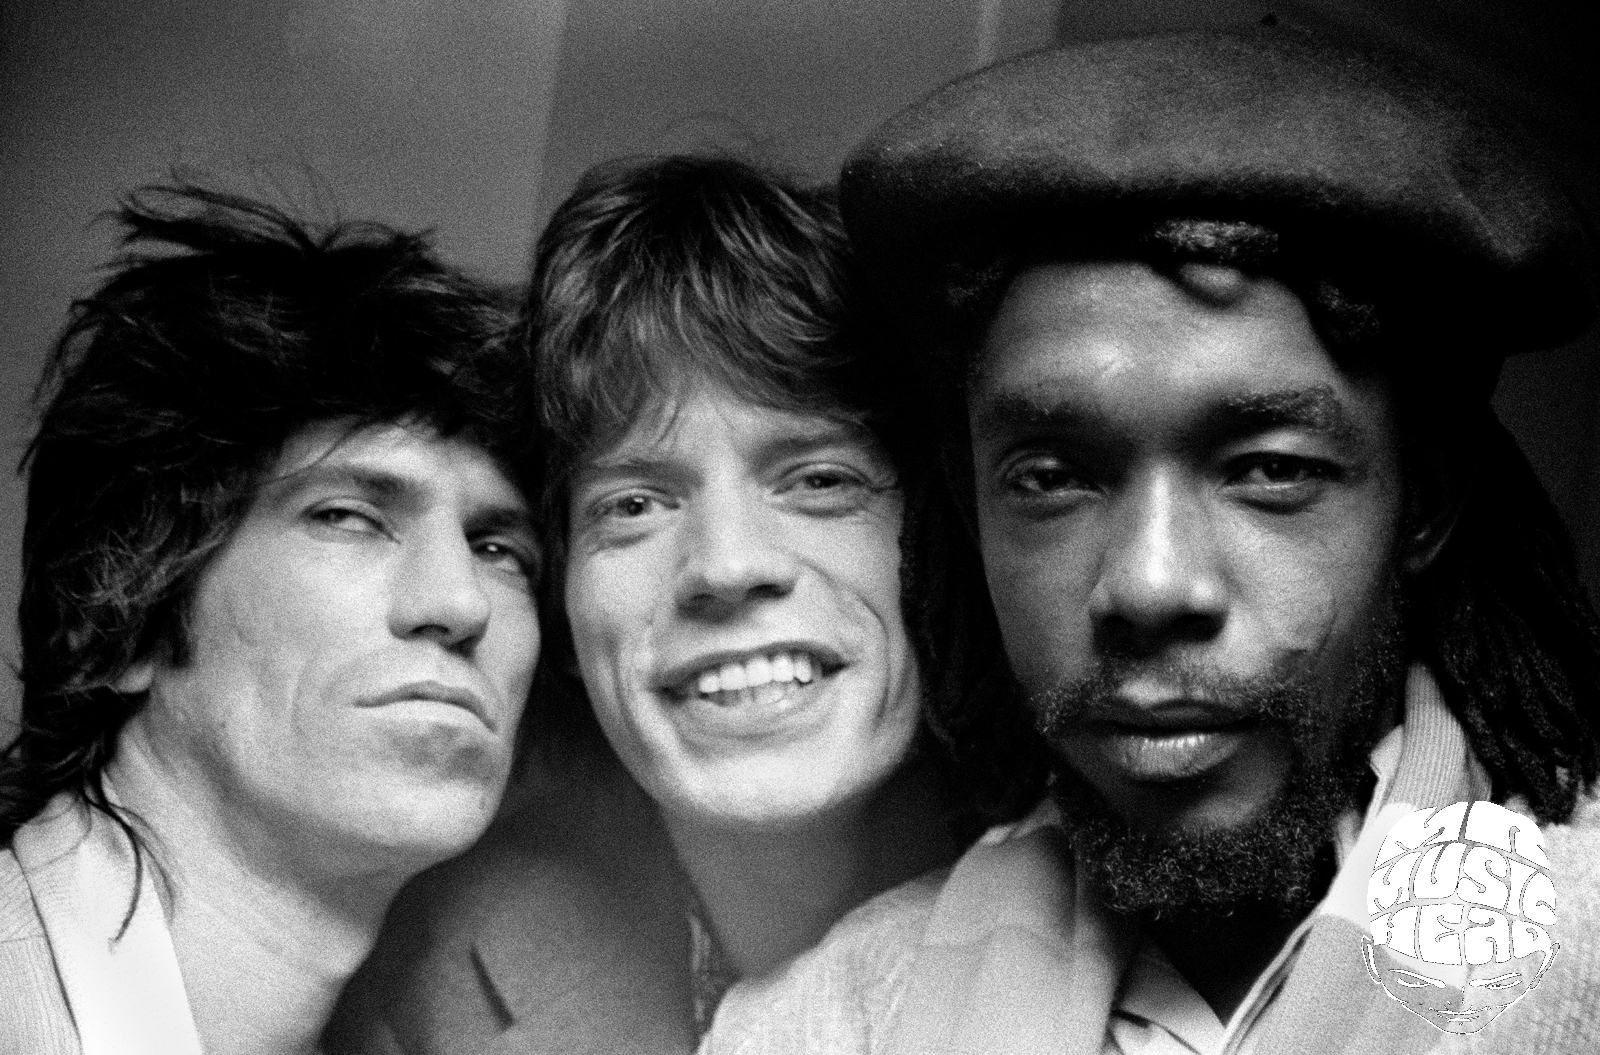 peter simon_keith richards_mick jagger_peter tosh 2.jpg